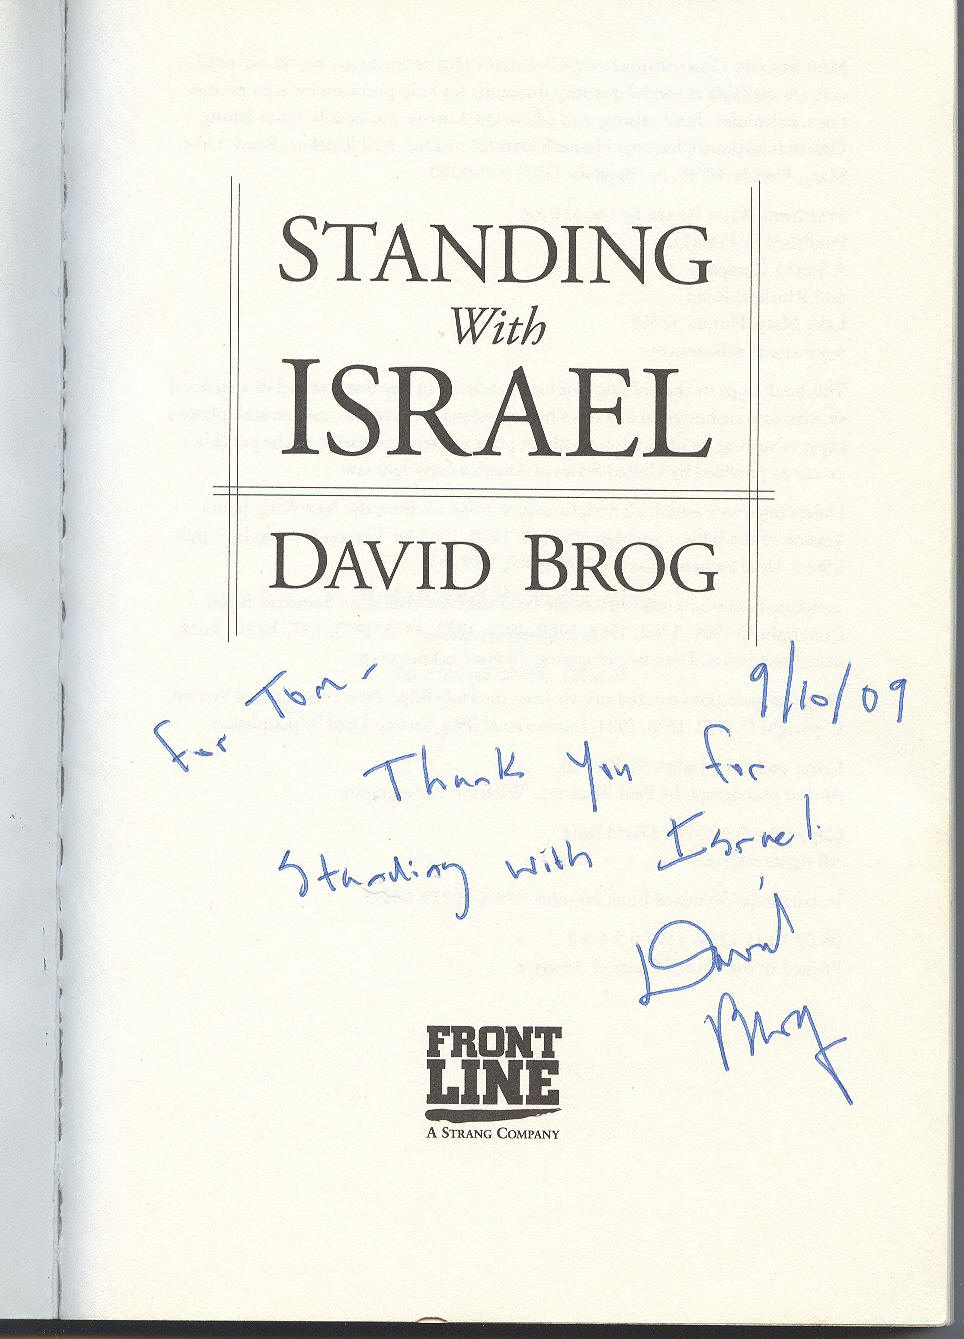 STANDING%20With%20ISRAEL